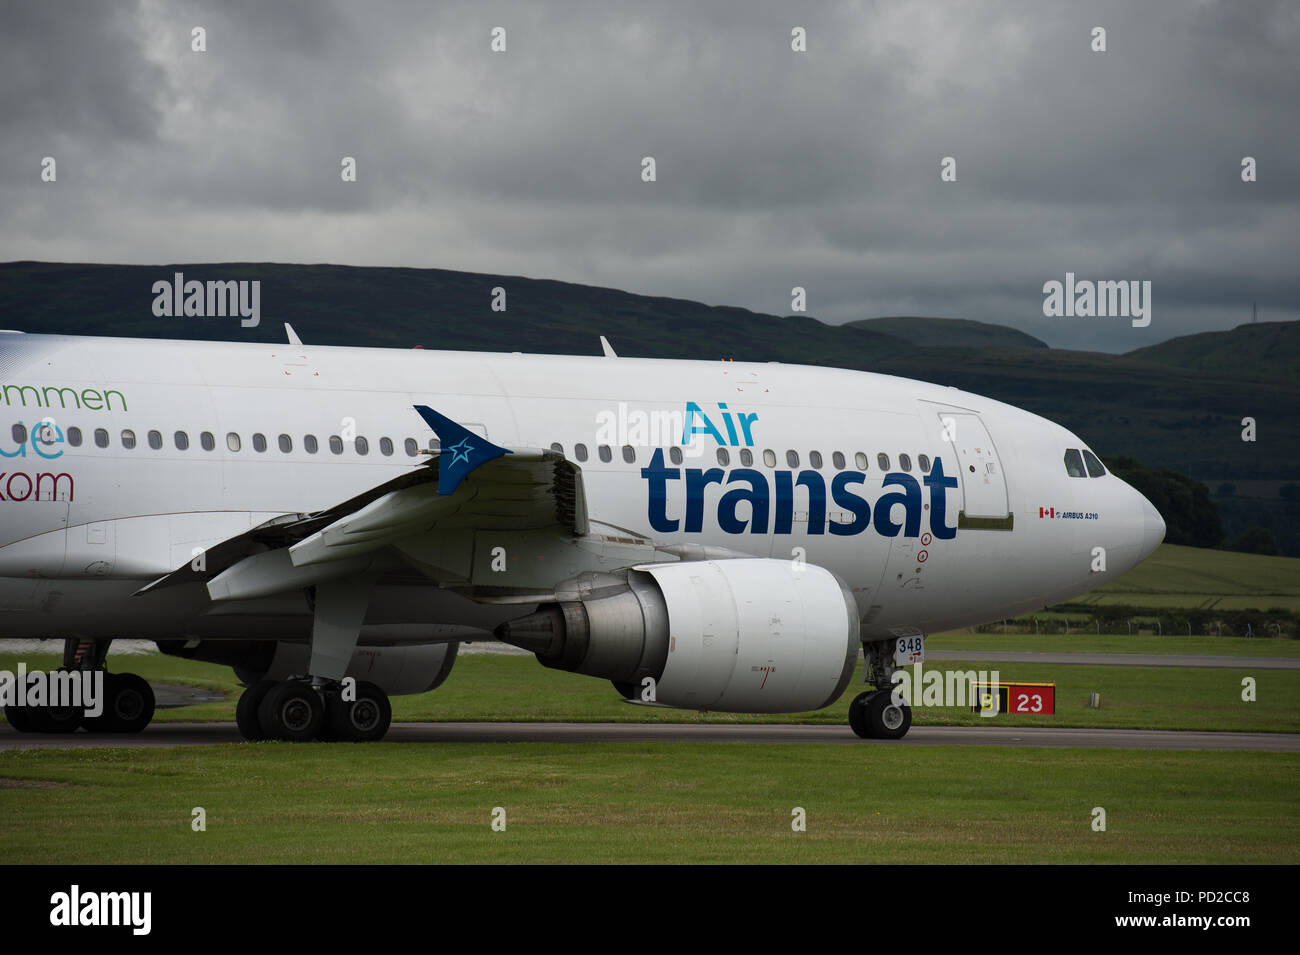 Canadian low cost airline, Airtransat seen at Glasgow International Airport, Scotland Stock Photo